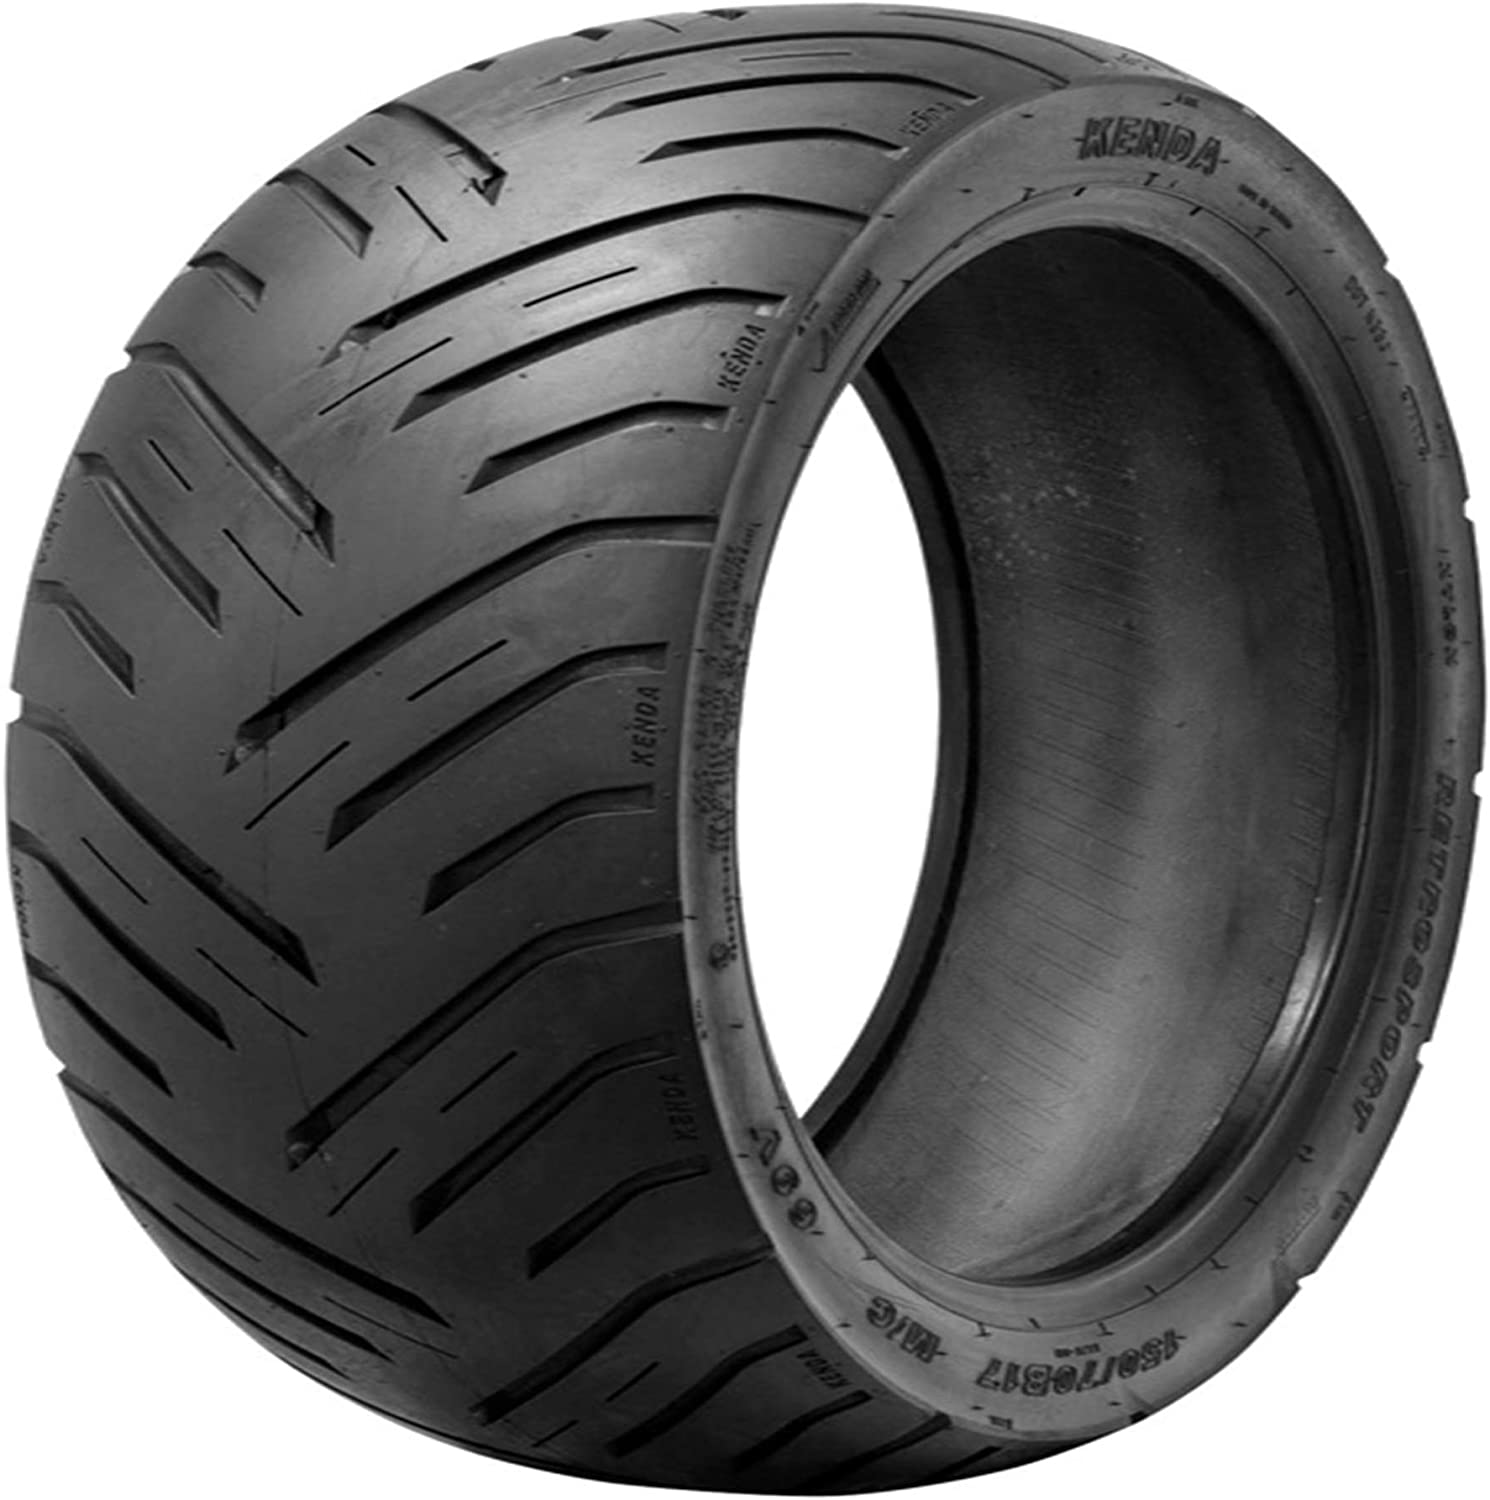 K676 Rapid rise RetroActive Rear Tire - 130 1989 Discount mail order Fits 90-16 Harley Davidson